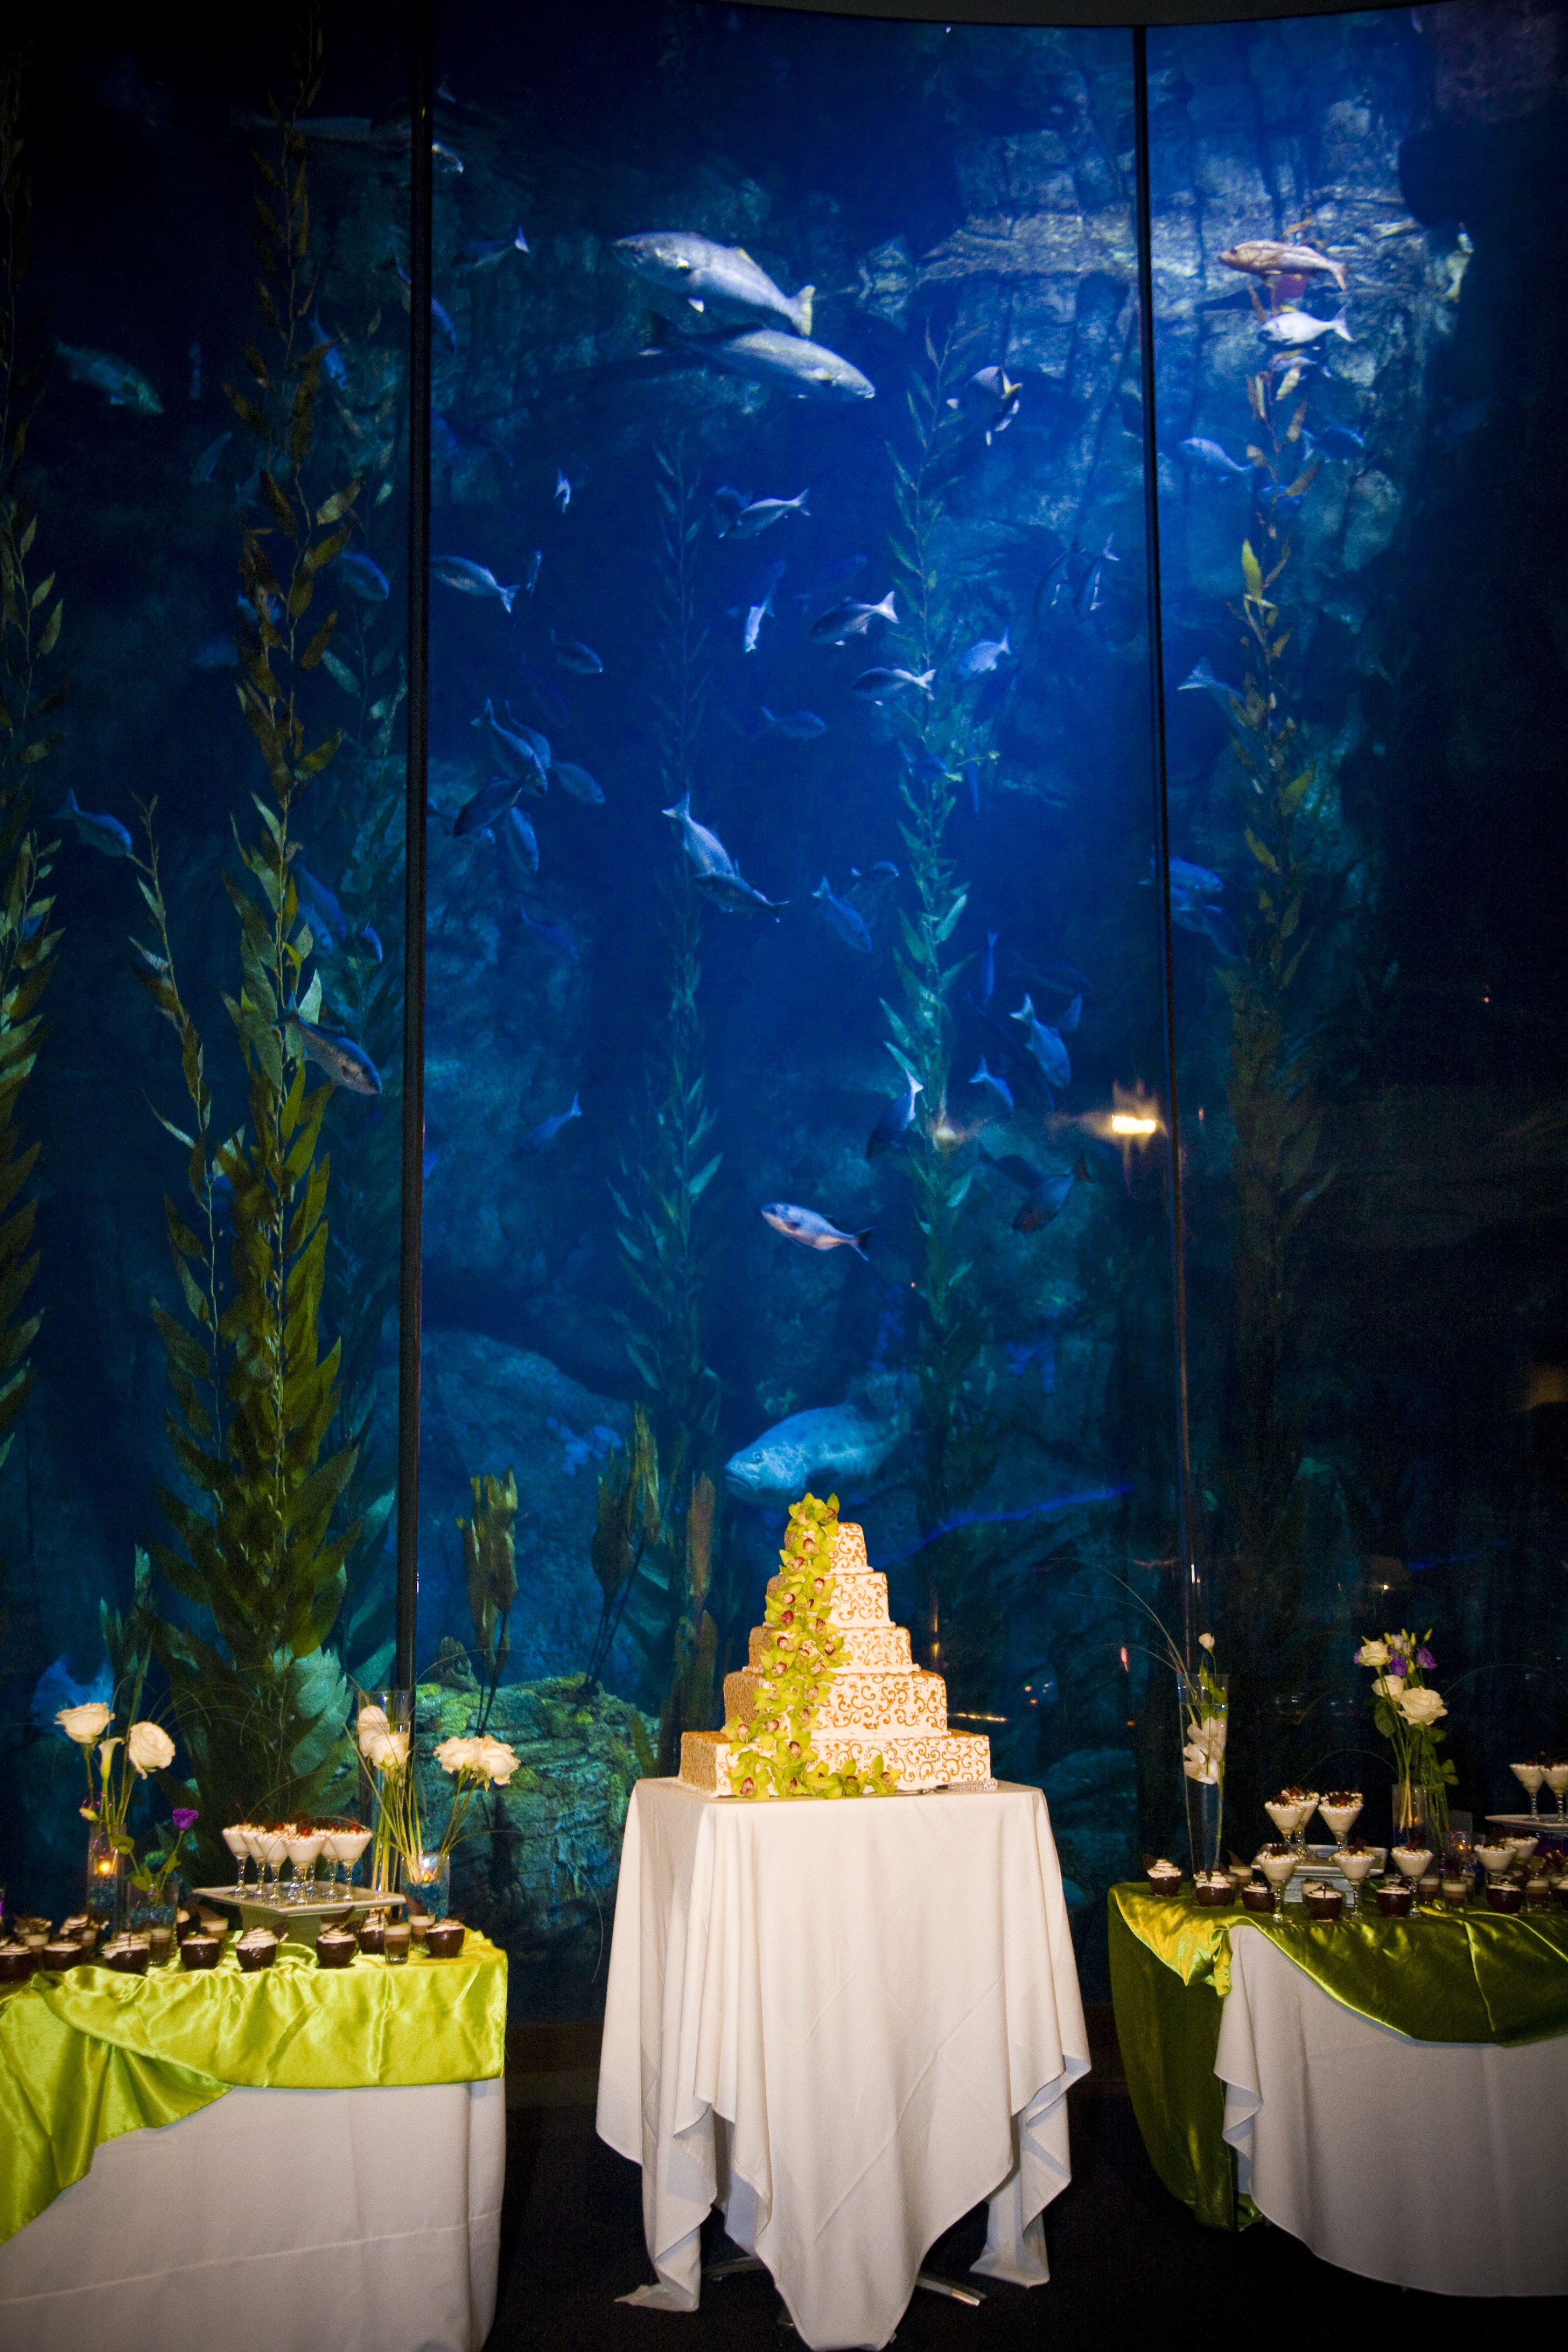 Long Beach Aquarium Wedding It Was Such A Unique Venue The Dance Floor Underneath Life Size Hanging Whale And Cake Up Against One Of World S